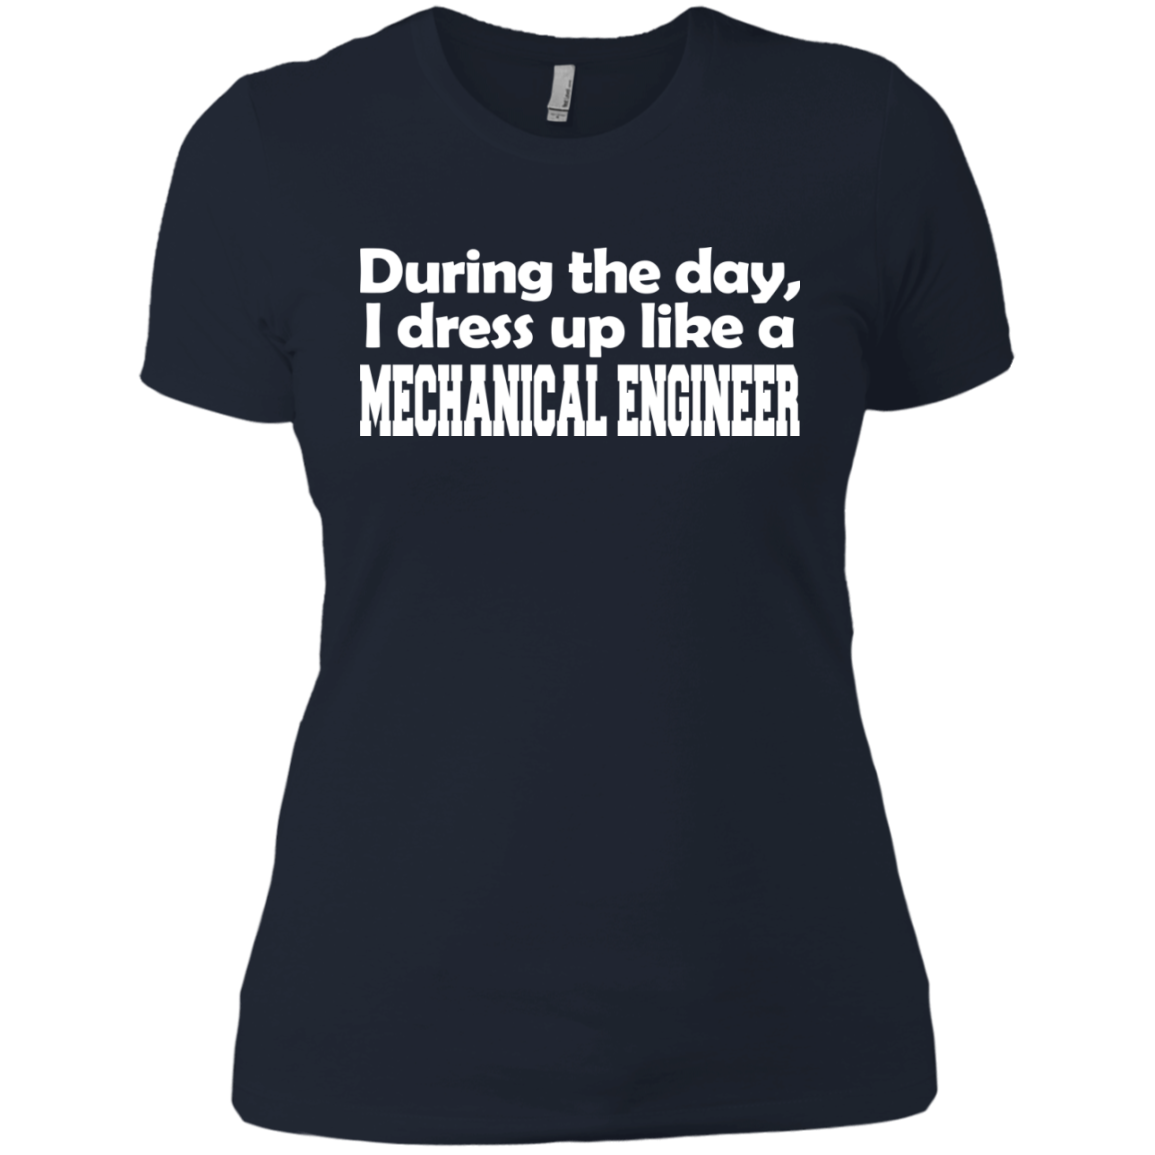 During the day, I dress up like a Mechanical Engineer - The Sun Cat